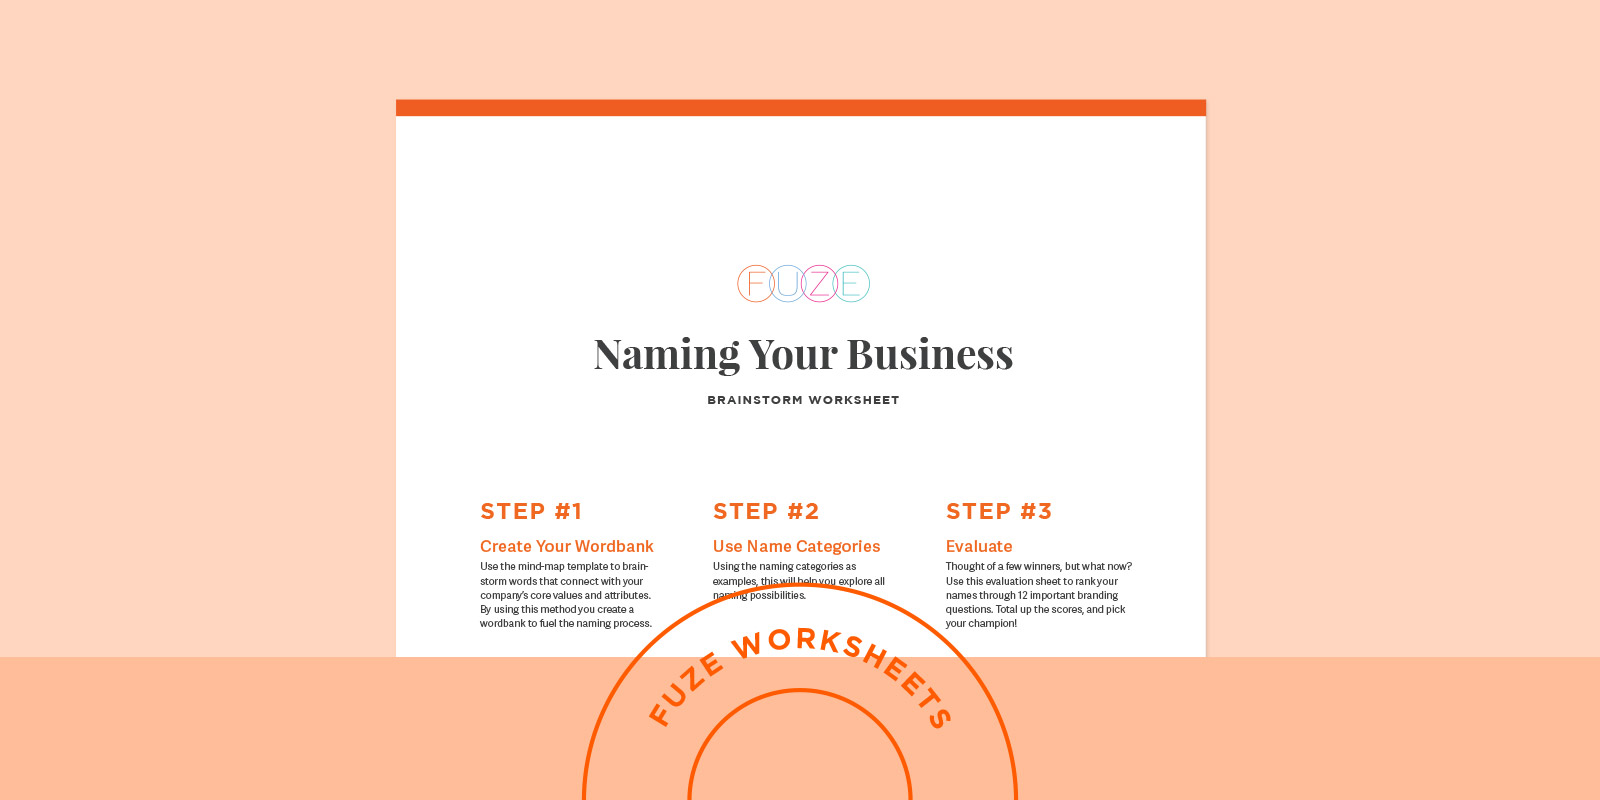 Fuze branding brainstorm worksheet tips for naming your business naming your business free brainstorm worksheet flashek Gallery